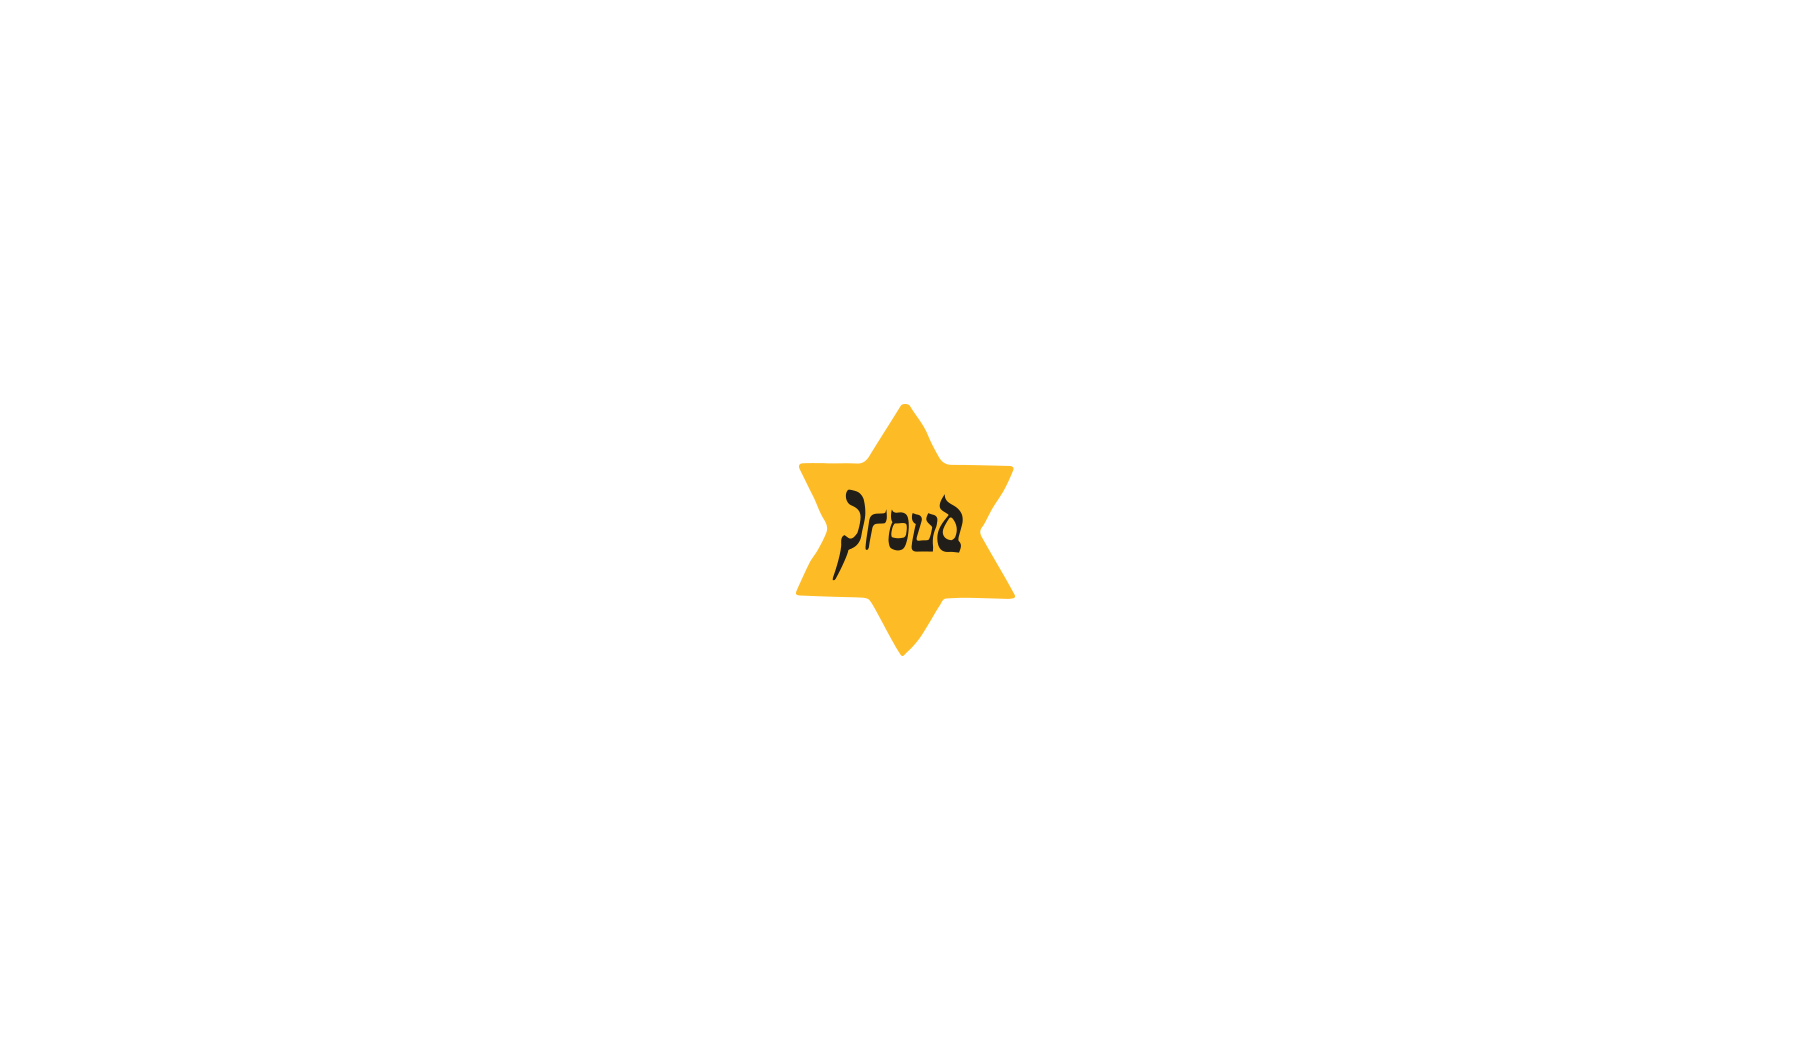 jude-yellow-star-flip-proud-by-ethan-solouki-jewish-design